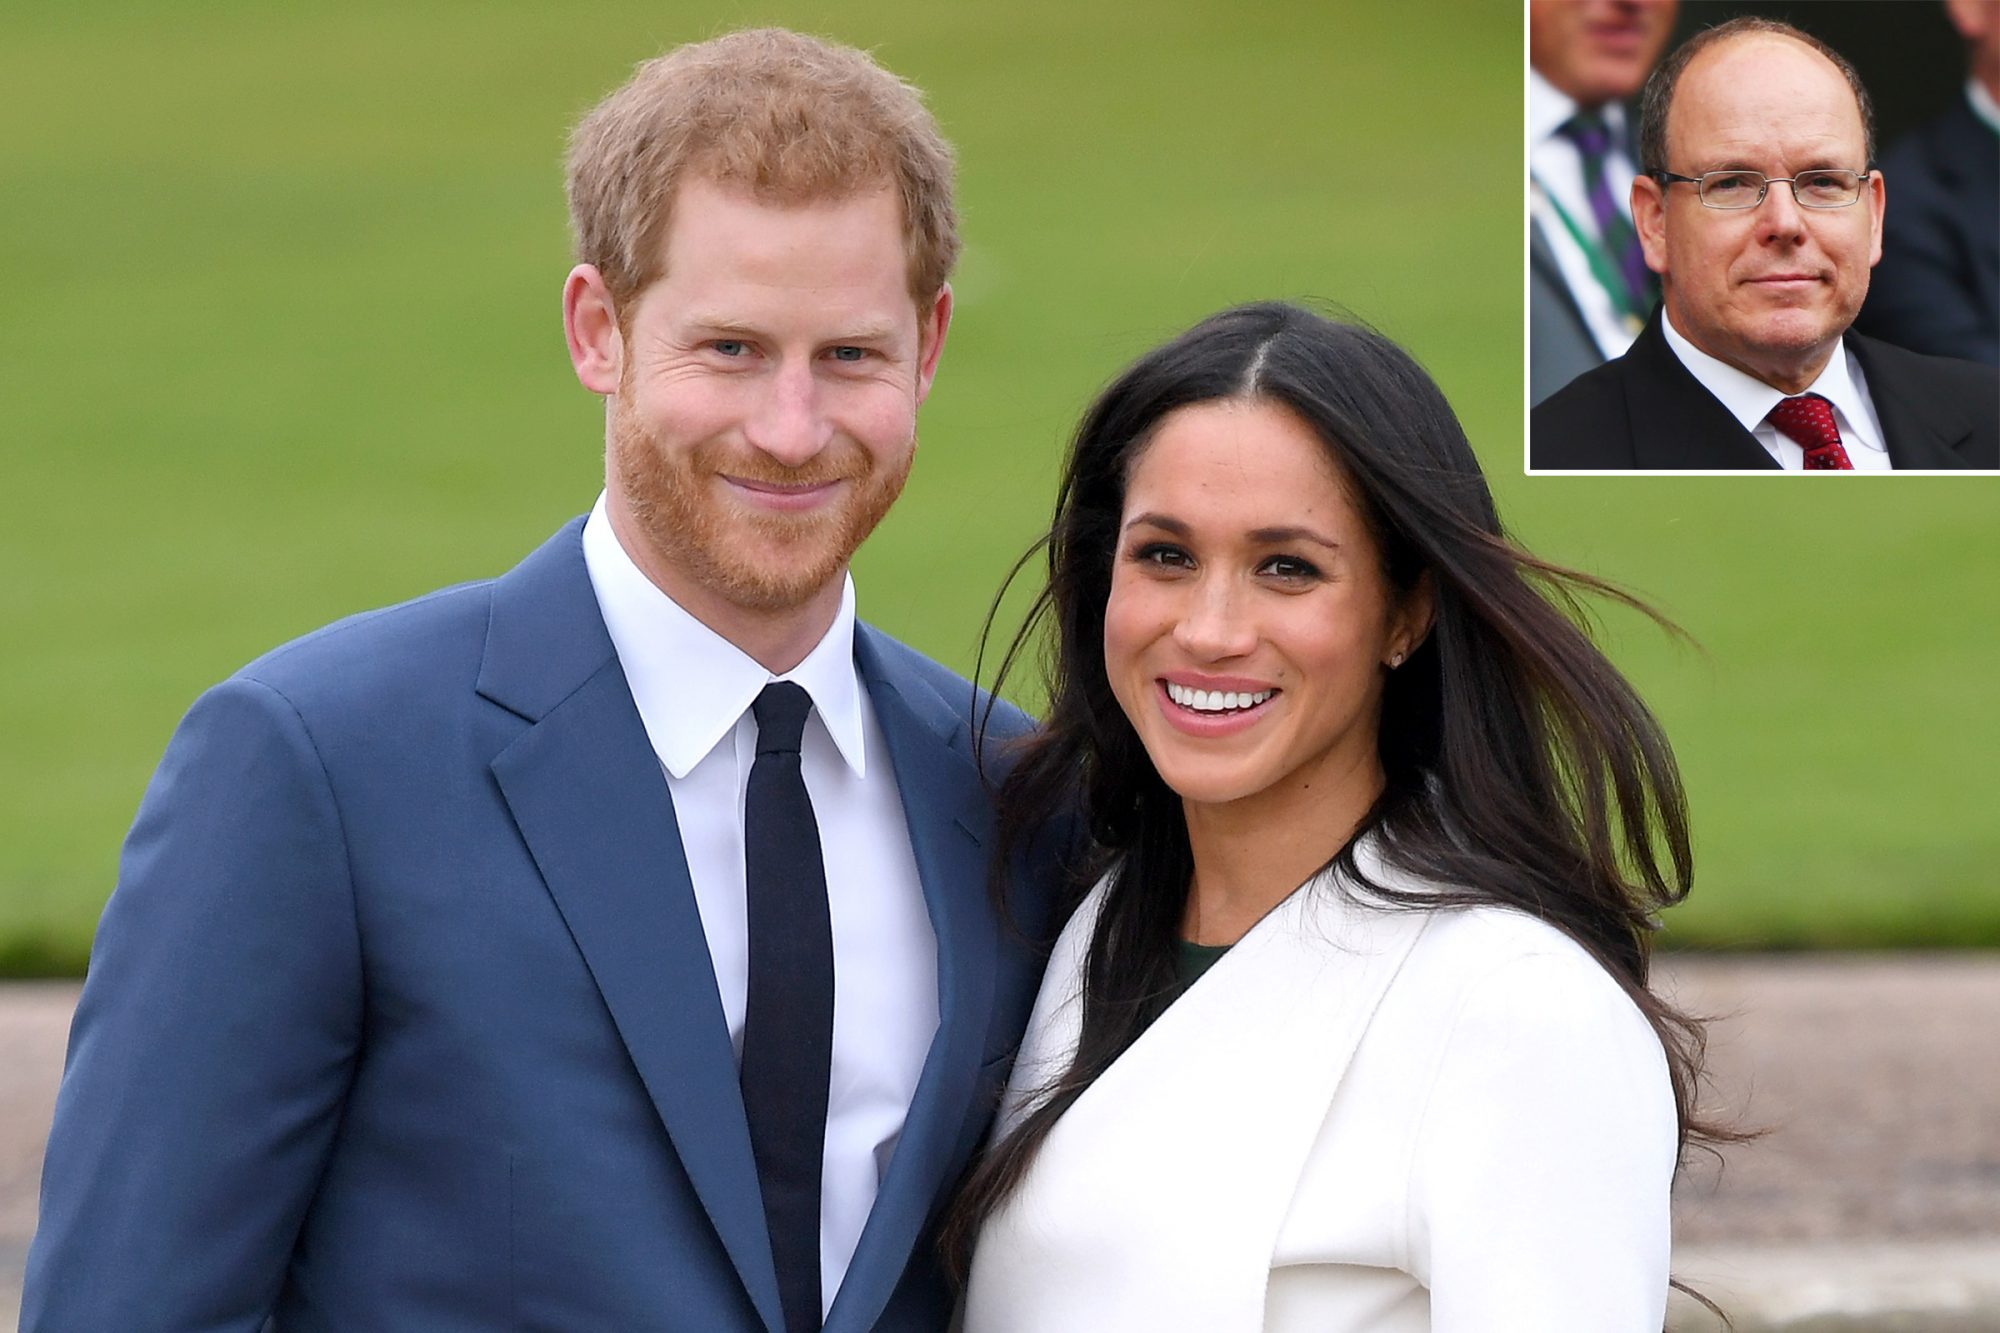 Prince Harry and Meghan Markle, Prince Albert II